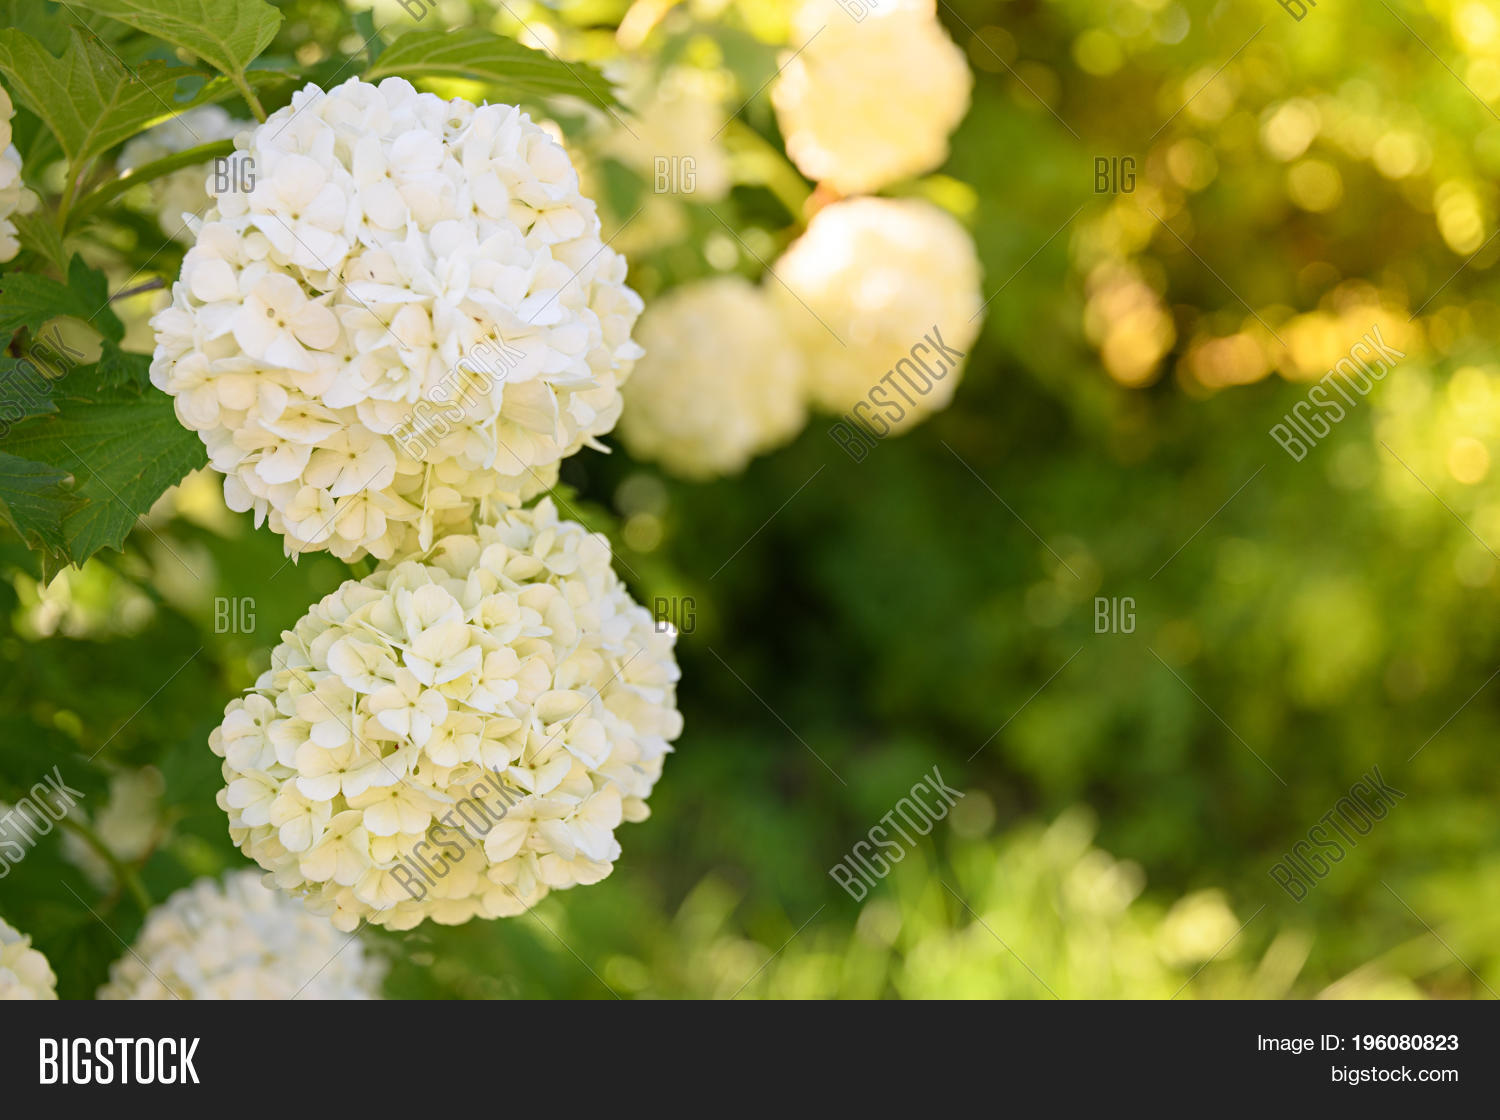 Decorative kalina bush image photo free trial bigstock decorative kalina bush viburnum or buldonezh viburnum with white flowers a lot of buds mightylinksfo